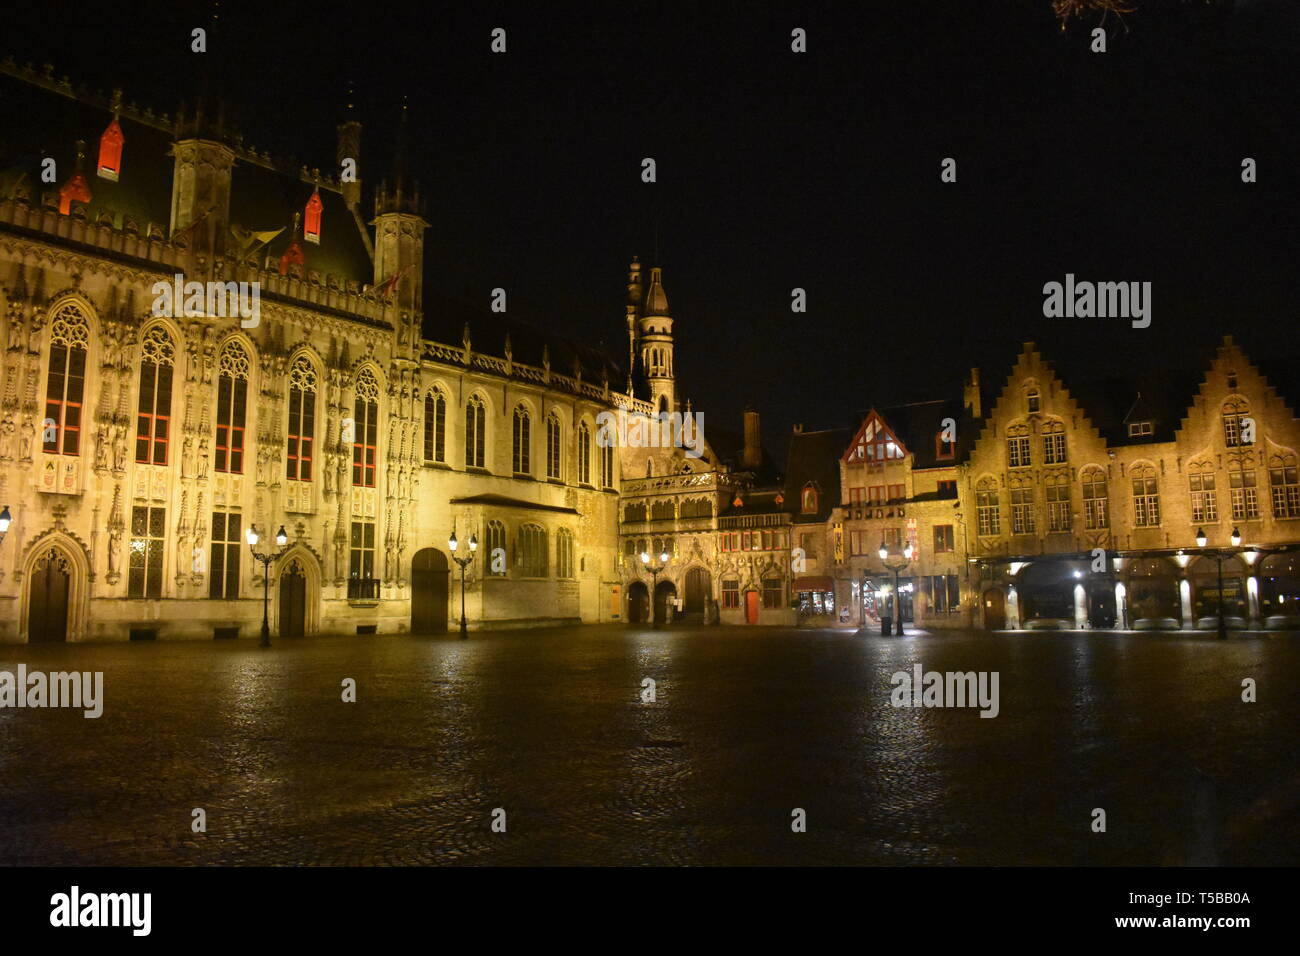 Brugges Bruges Belgium Canals Tower Chocolate Beer Waffles Historical Old City Citadel with Moat Travel Belgium Colin Ferrell In Bruges Top 10 Best 10 - Stock Image